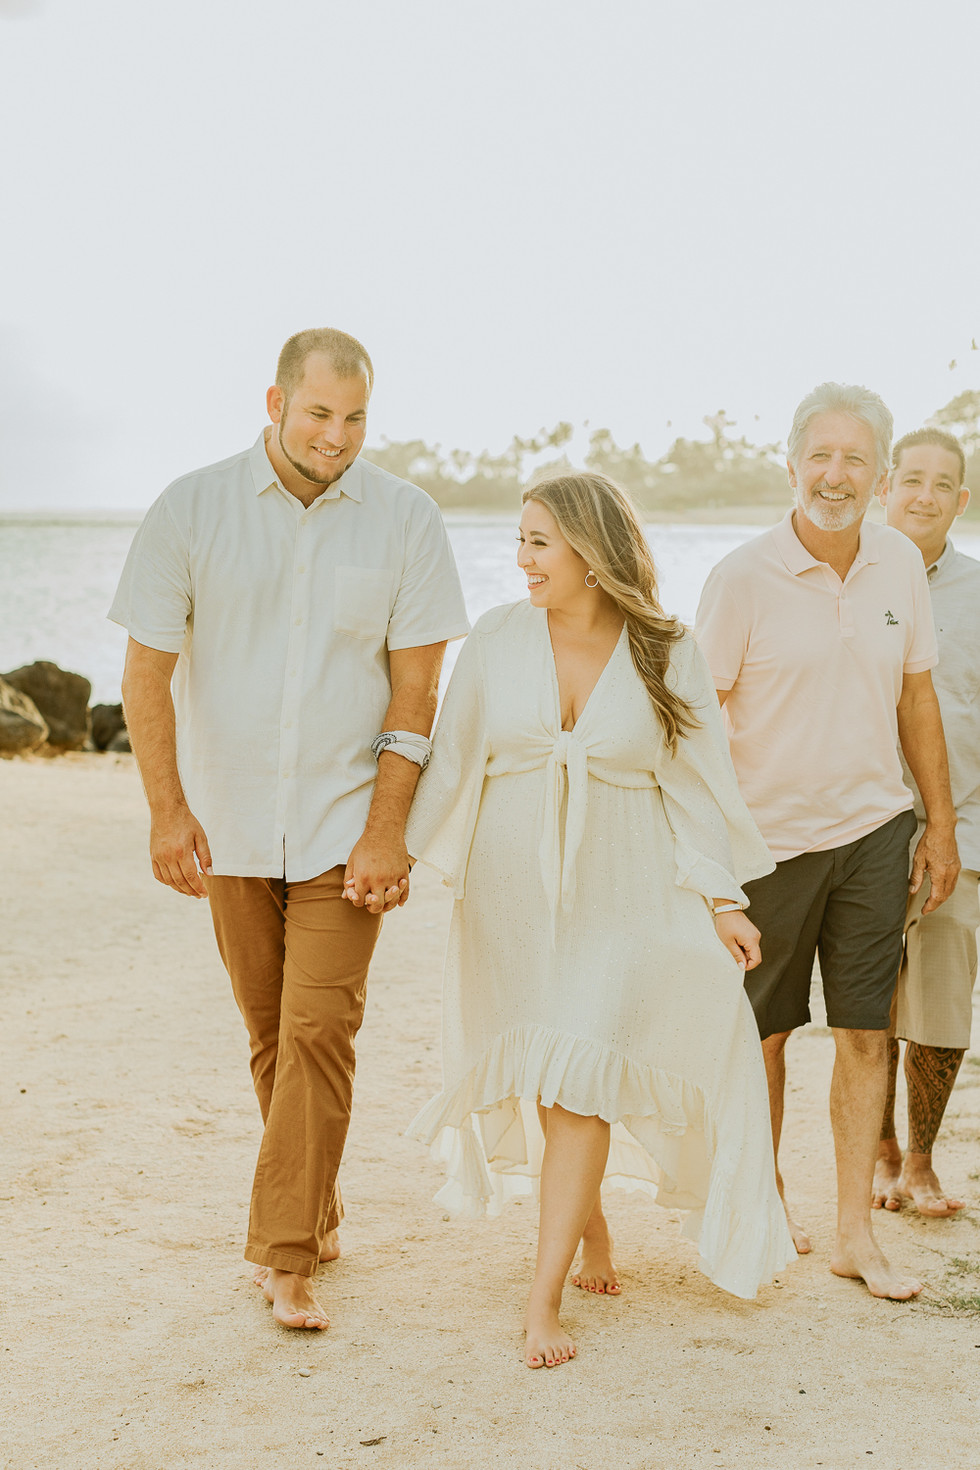 An Extended Family Photo Session on Oahu | Oahu Family Photographer | Marissa HB Photography Hawaii